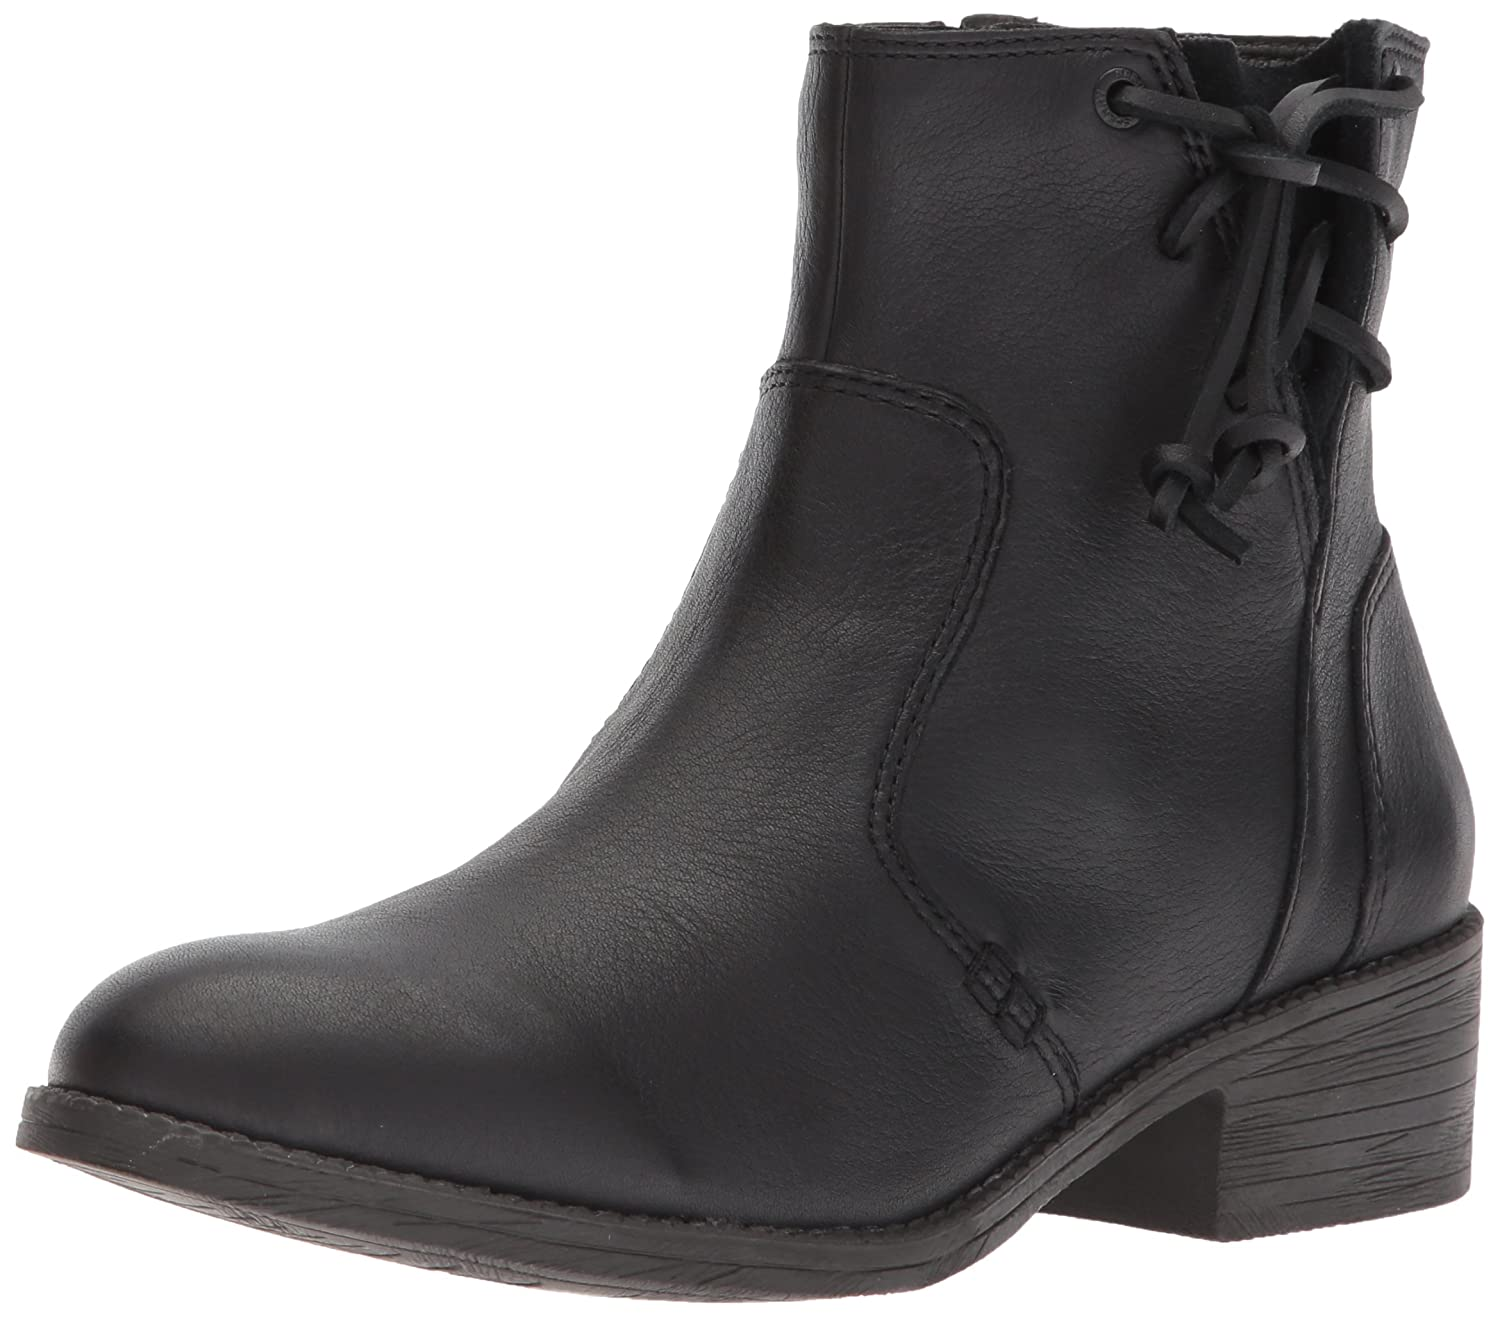 Sperry Top-Sider Women's Juniper Glyn Ankle Boot B01N5HI3SR 12 B(M) US|Black